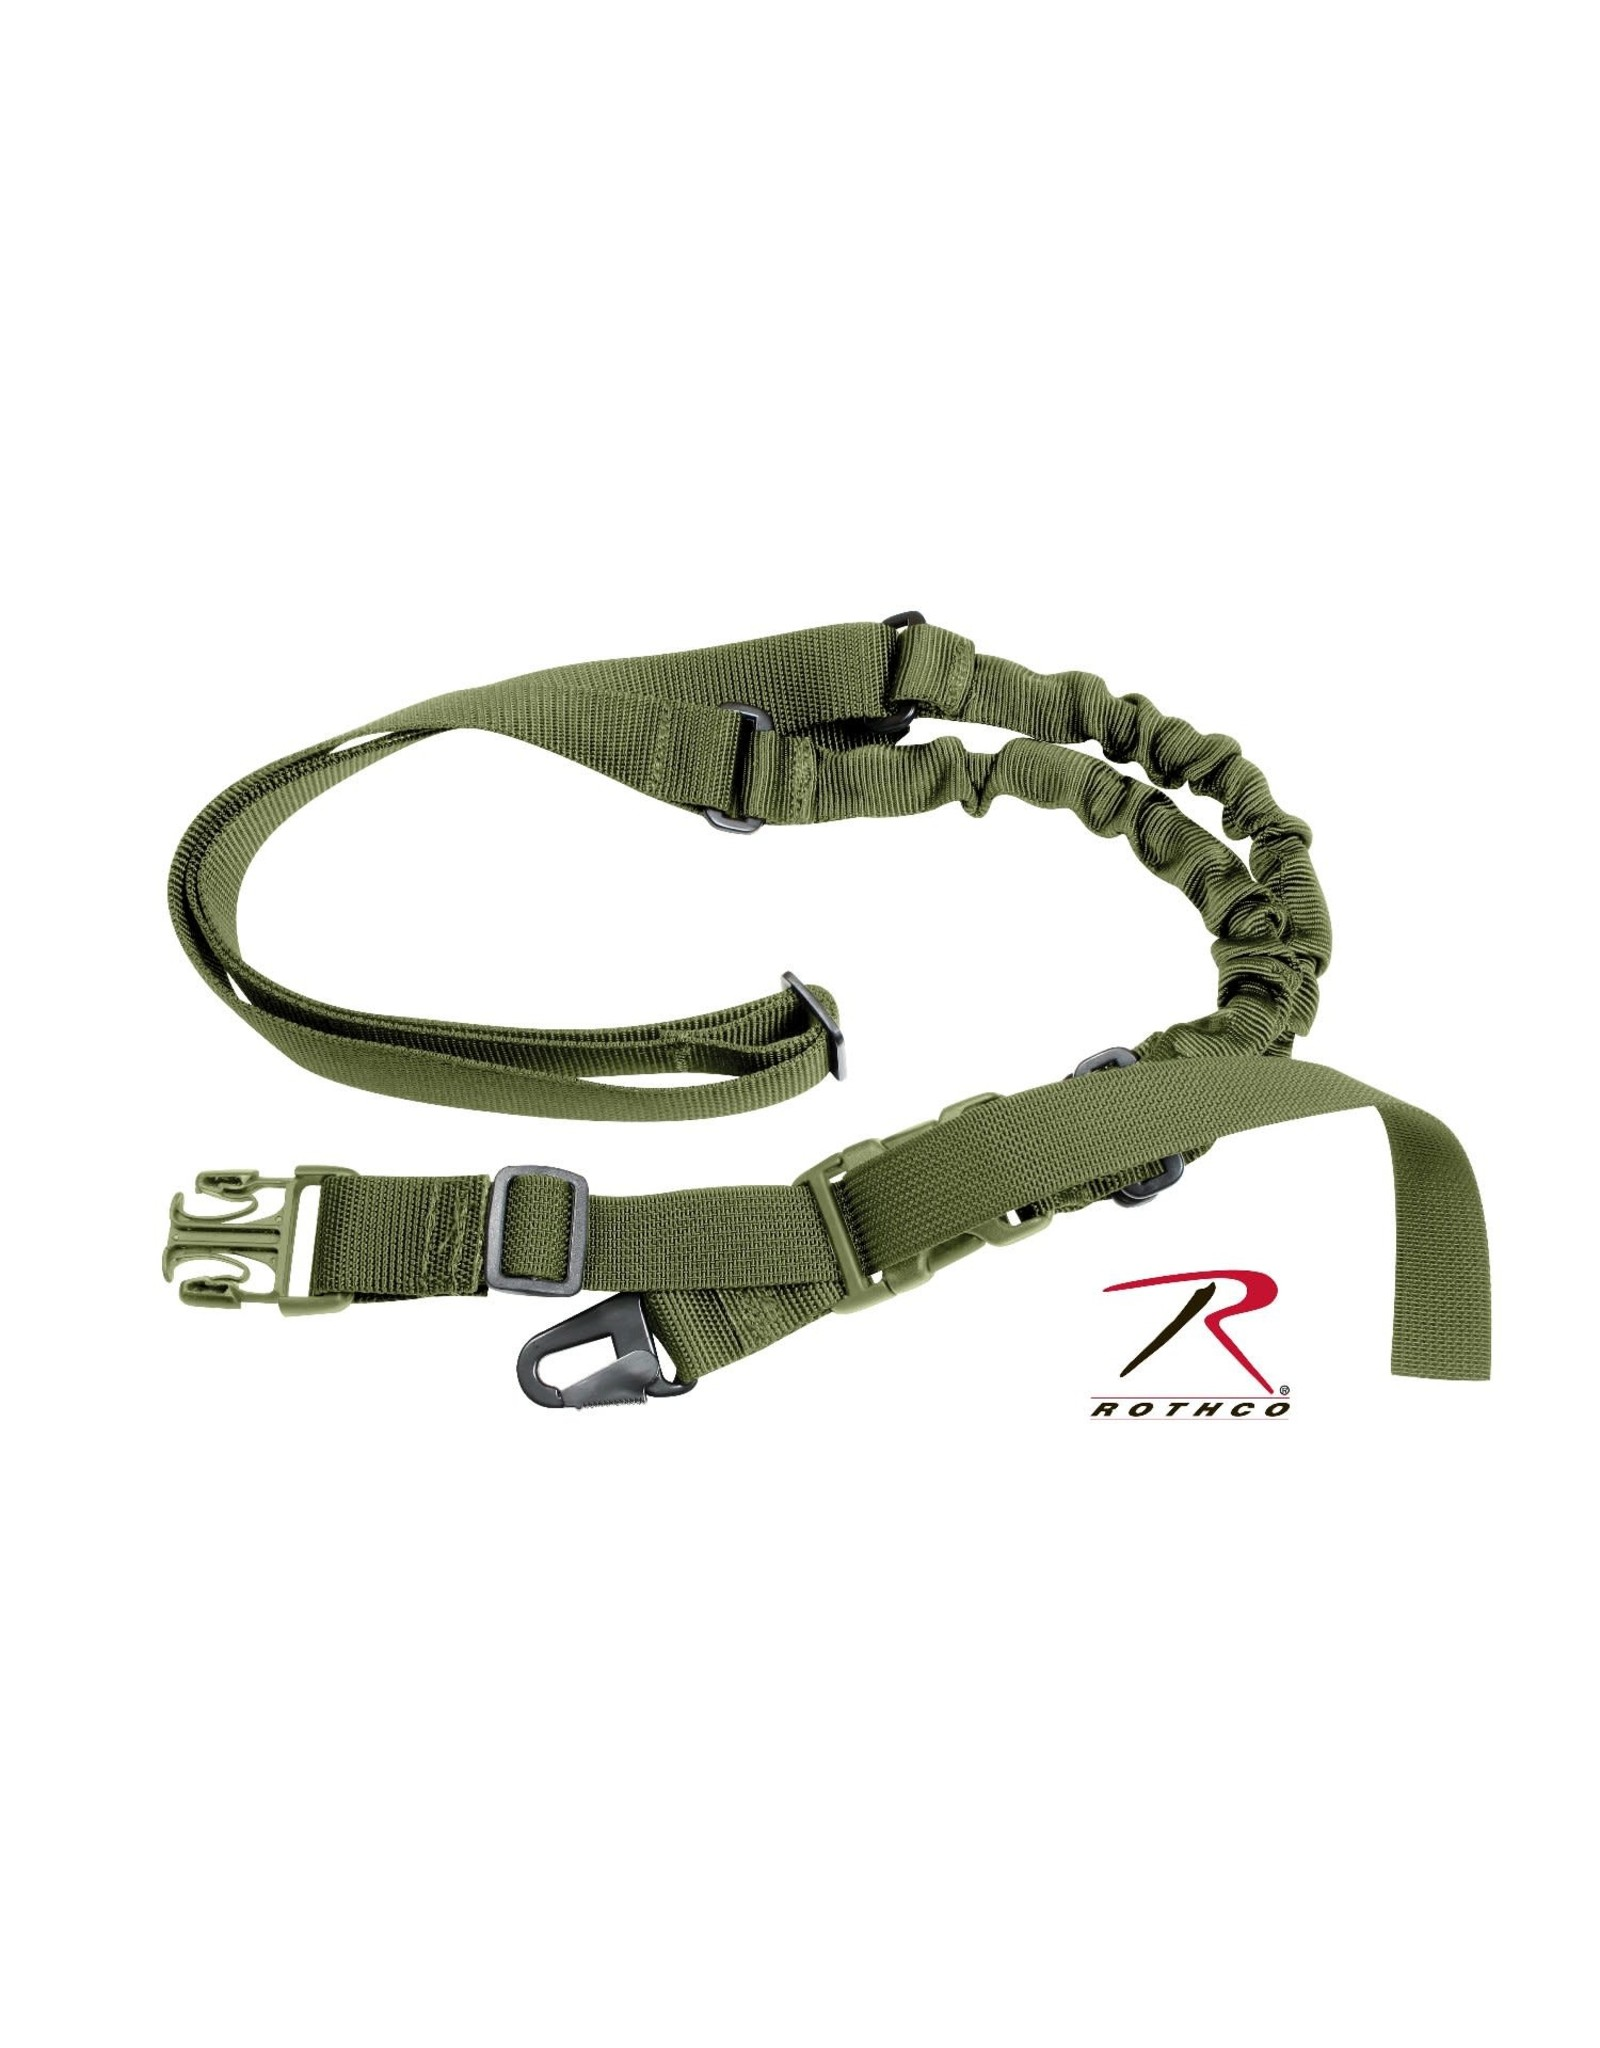 Rothco 1 Point Tactical Sling